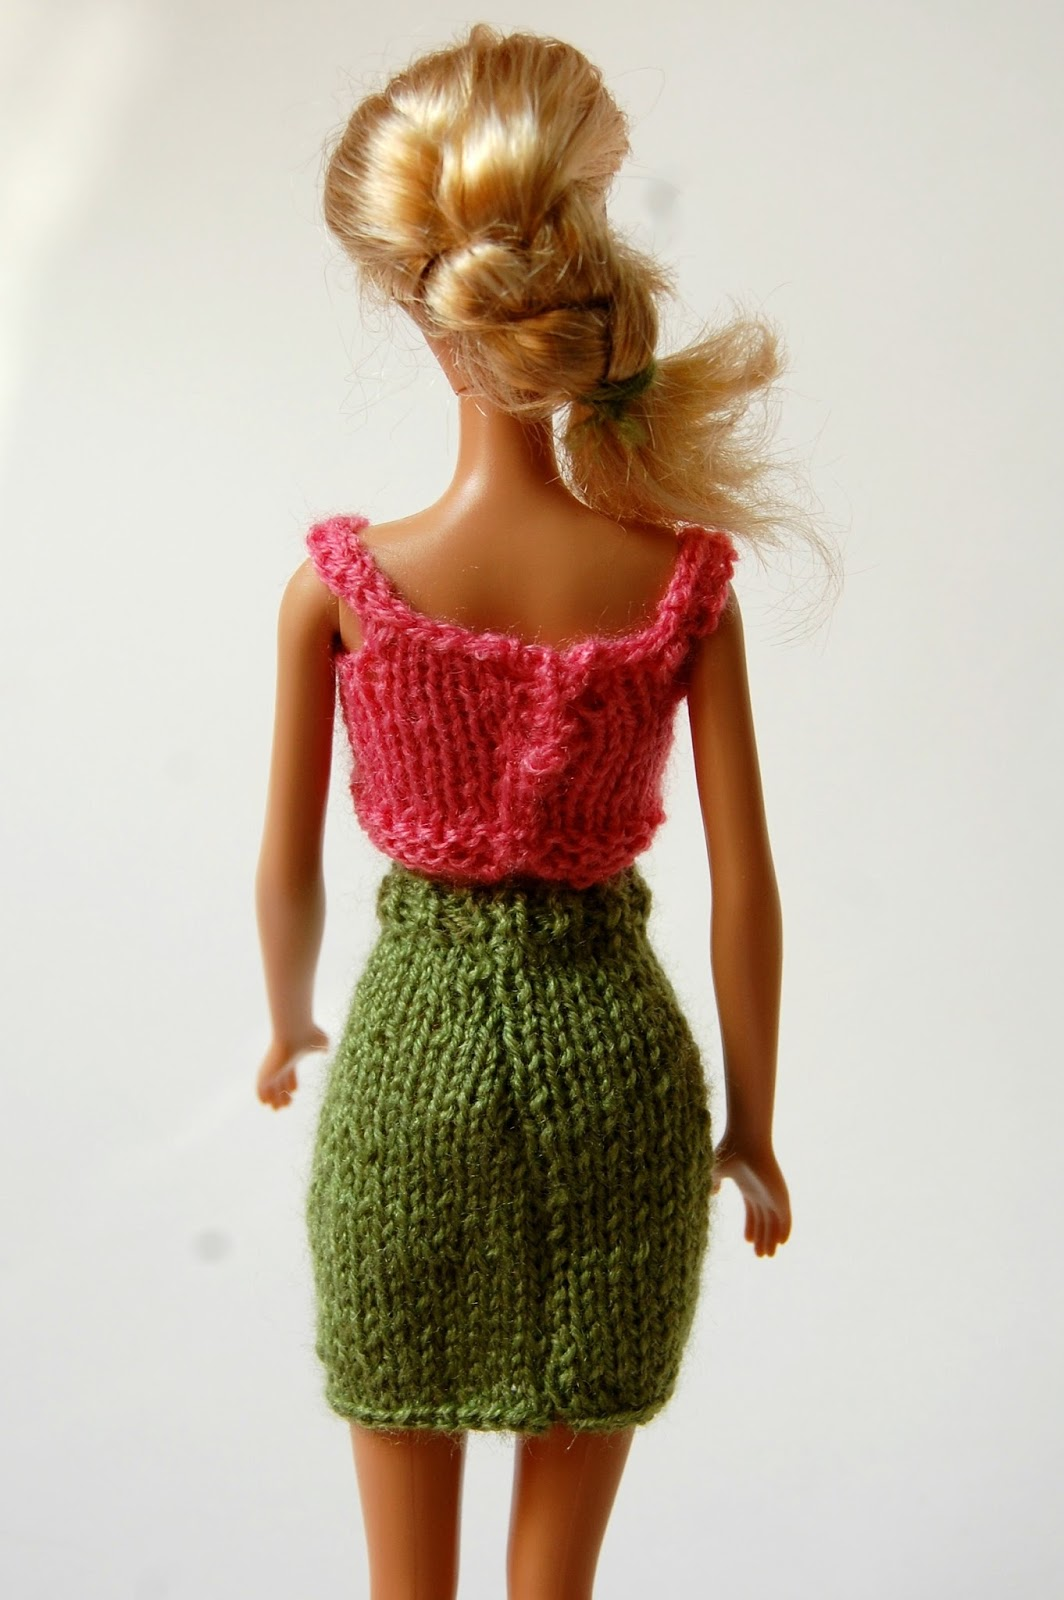 the geeky knitter: barbie pencil skirt - free knitting pattern